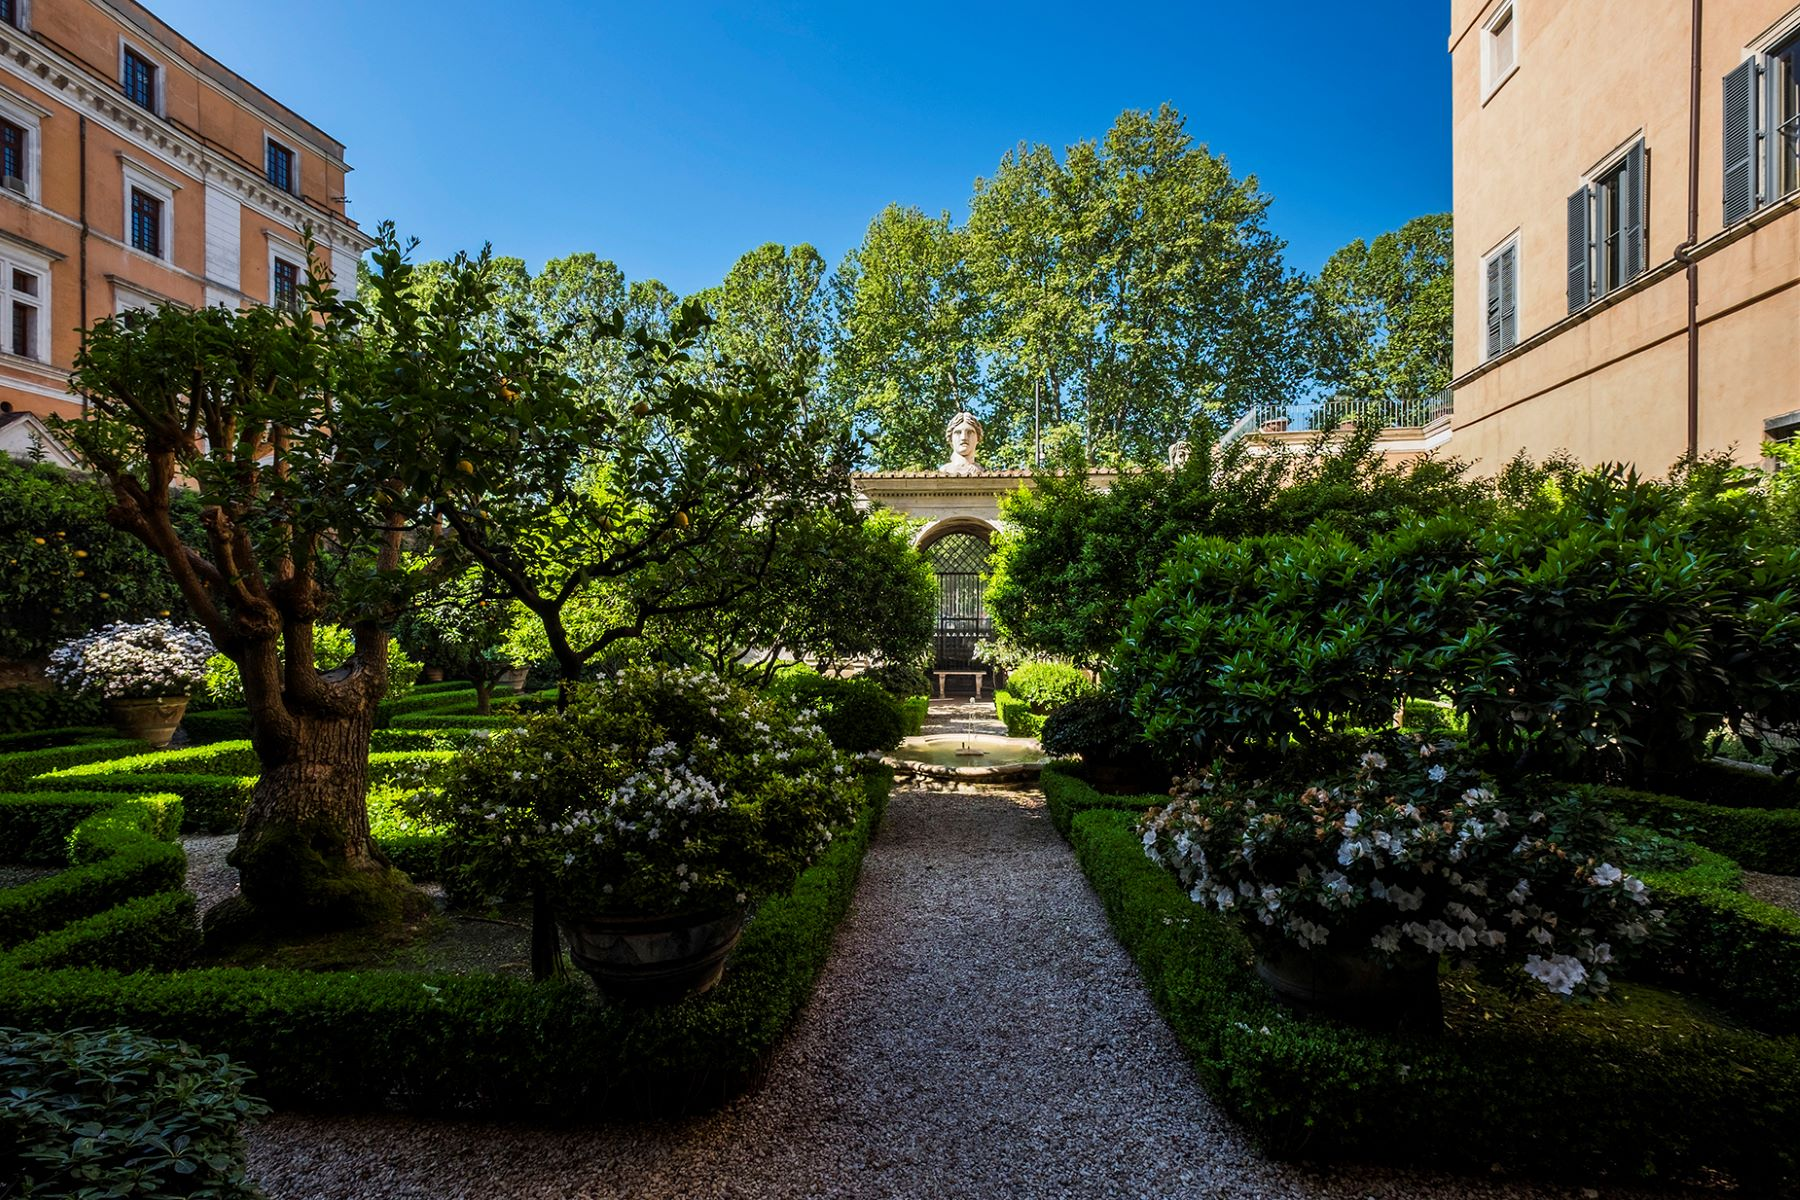 Single Family Home for Sale at Palazzo Sacchetti, a pearl of the late Reinassance in the heart of Rome Via Giulia Rome, 00186 Italy